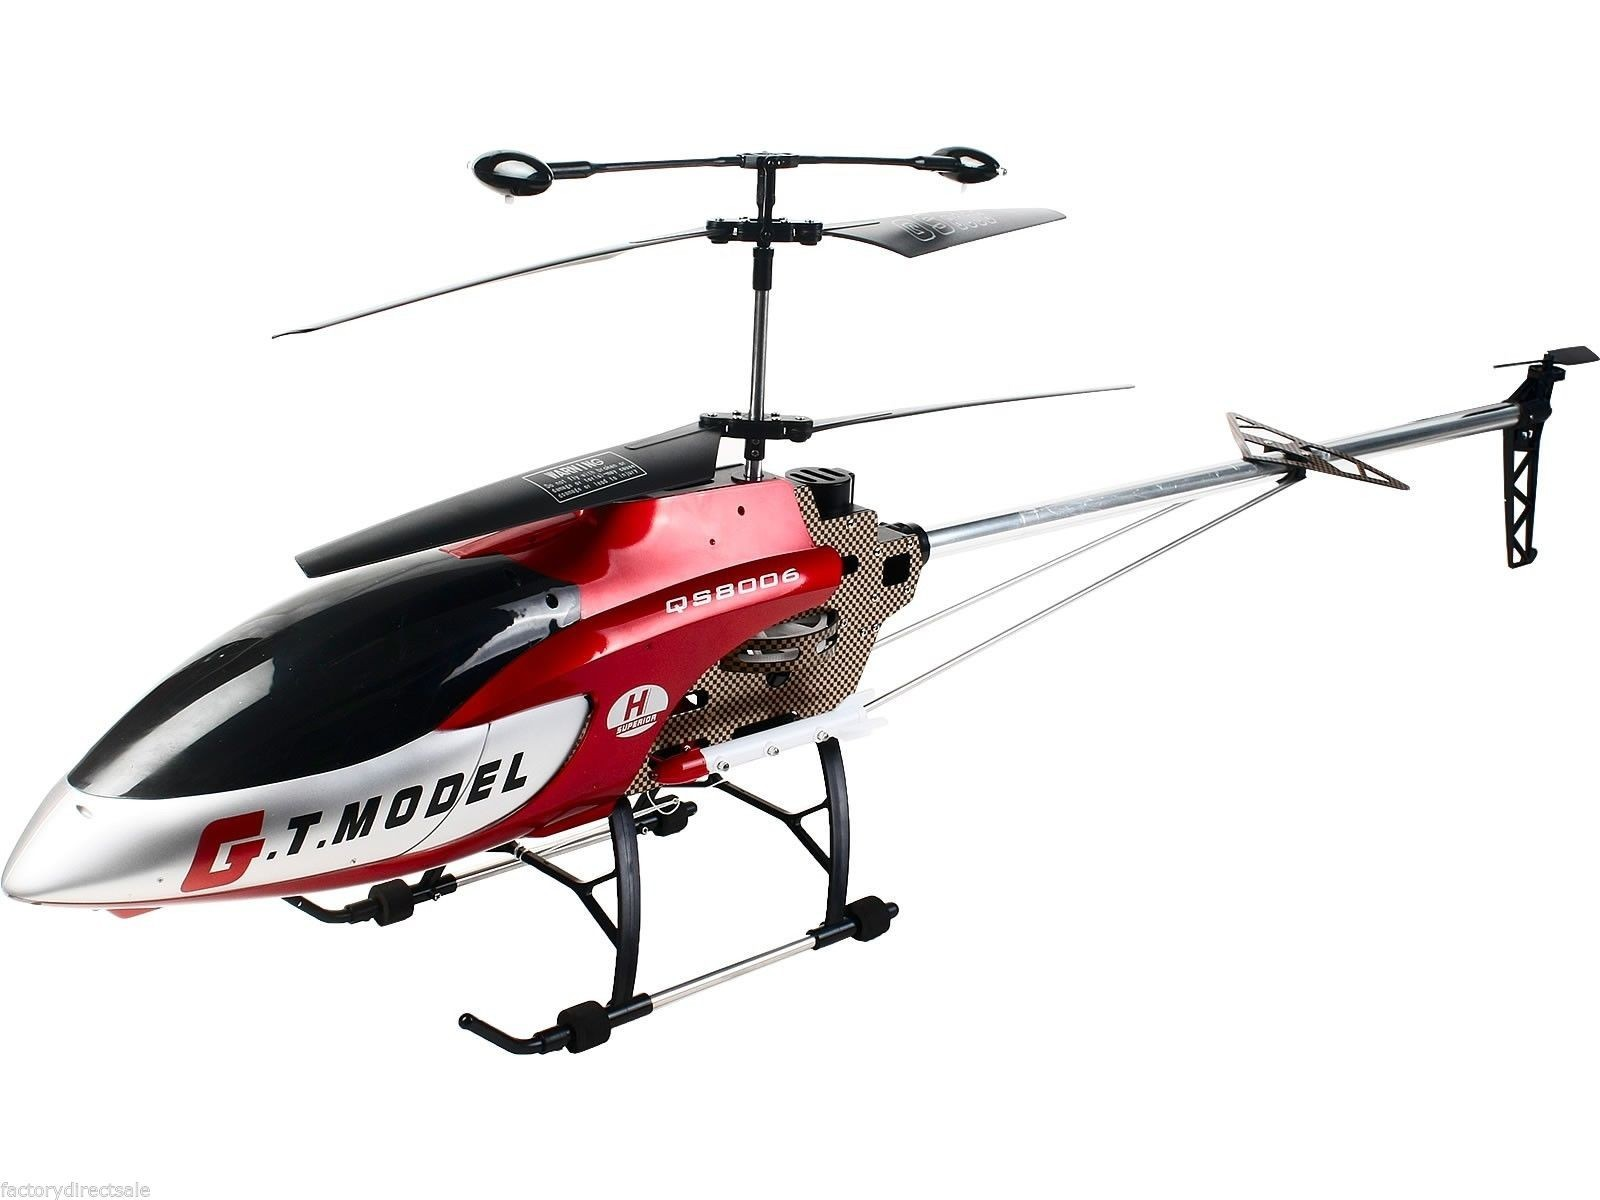 53 Inch Extra Large GT QS8006 2 Speed 3.5 CH RC LED Helicopter Builtin GYRO by Apontus